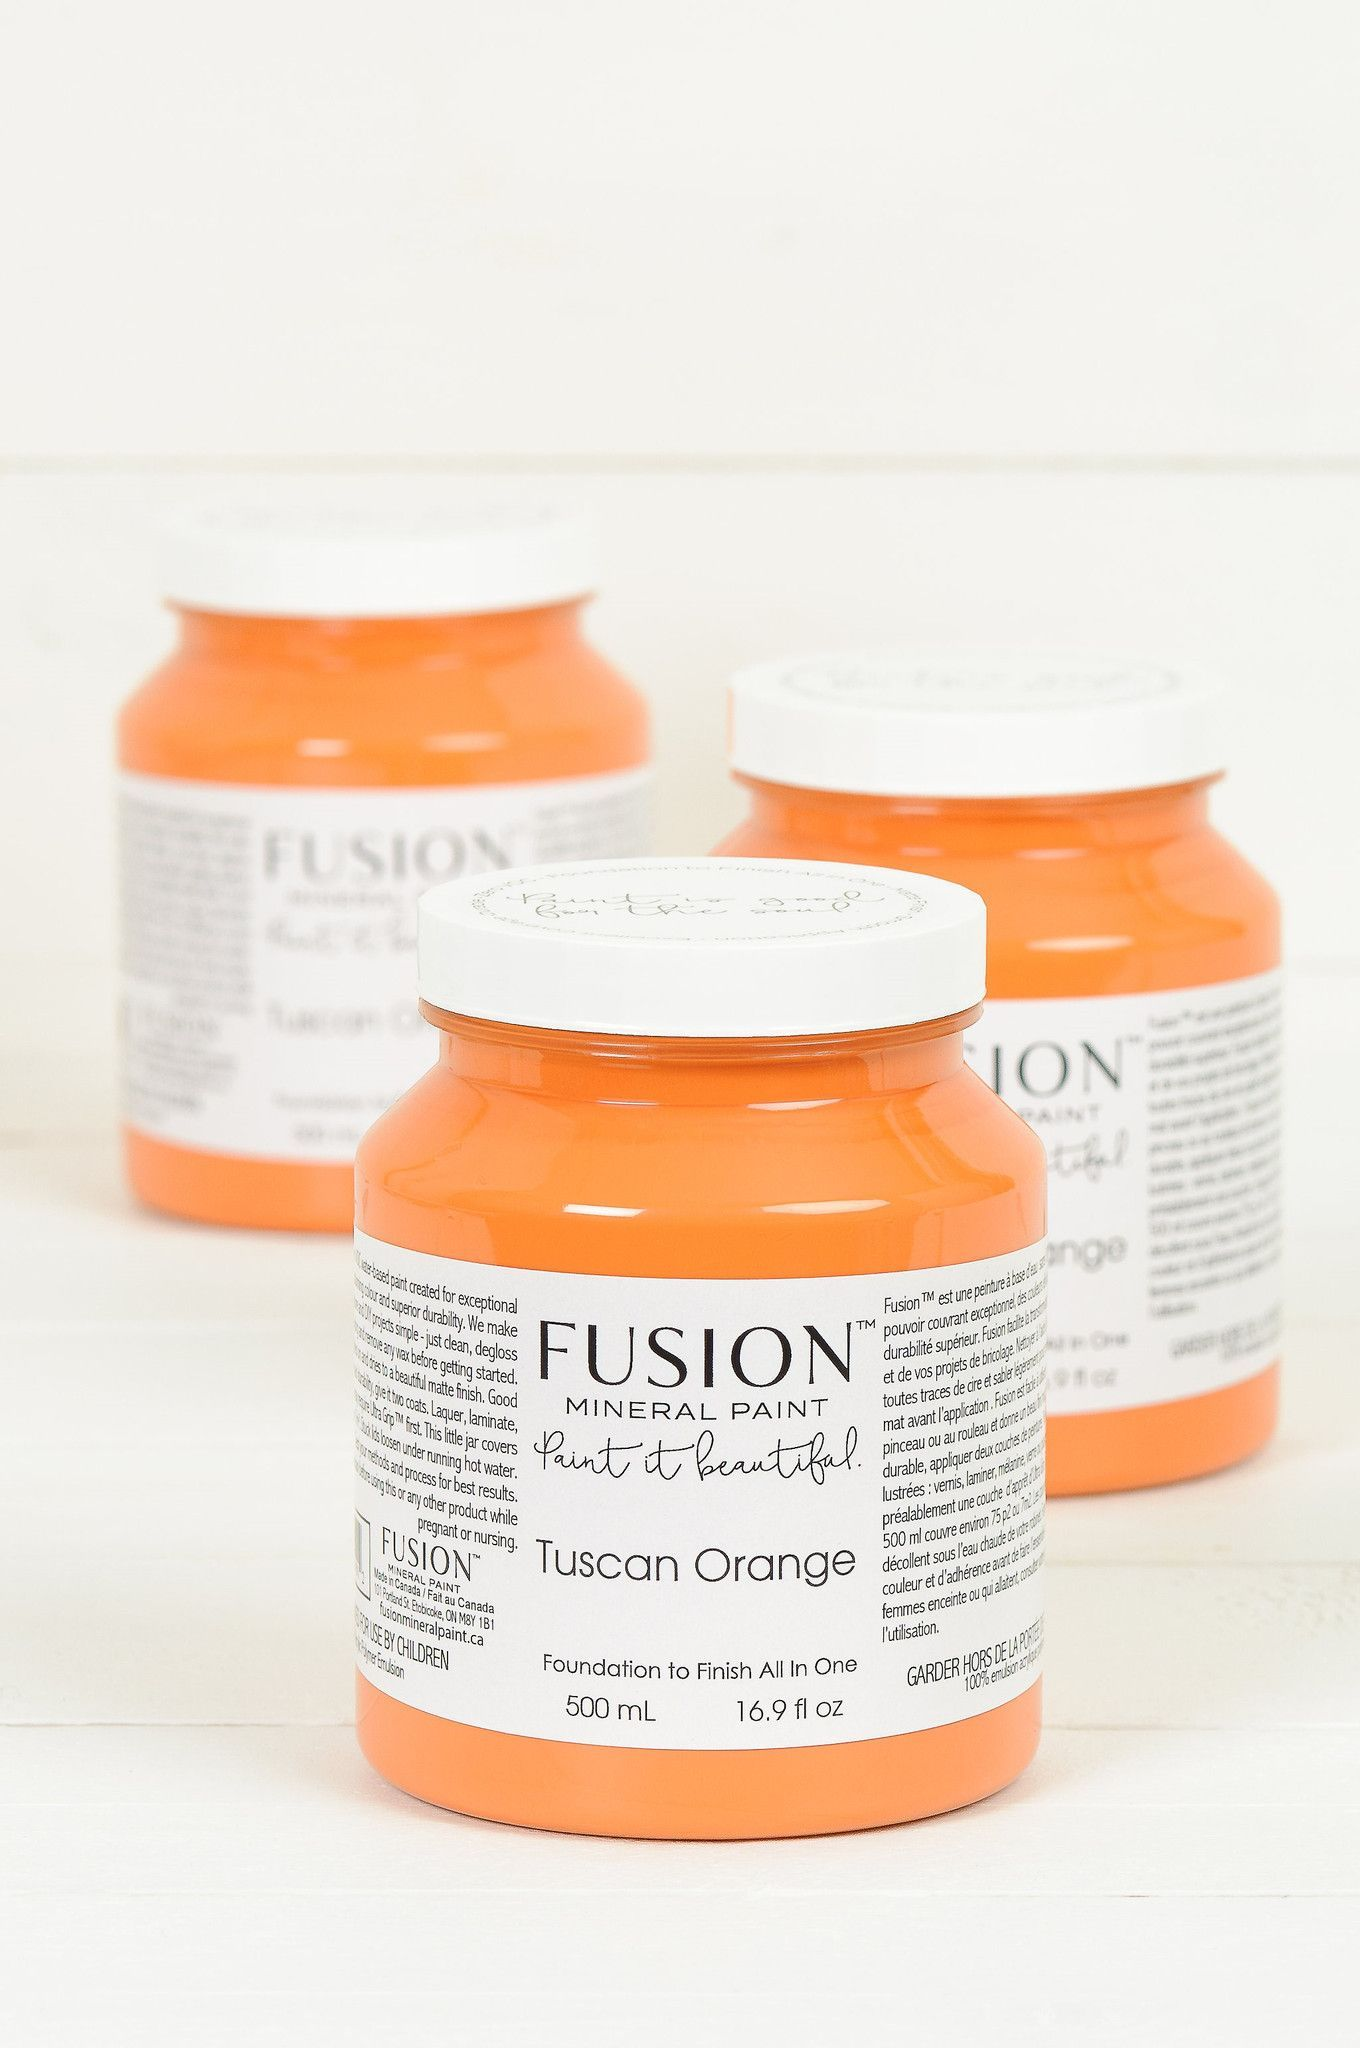 Tuscan Orange Fusion Mineral Paint 500ml Pint